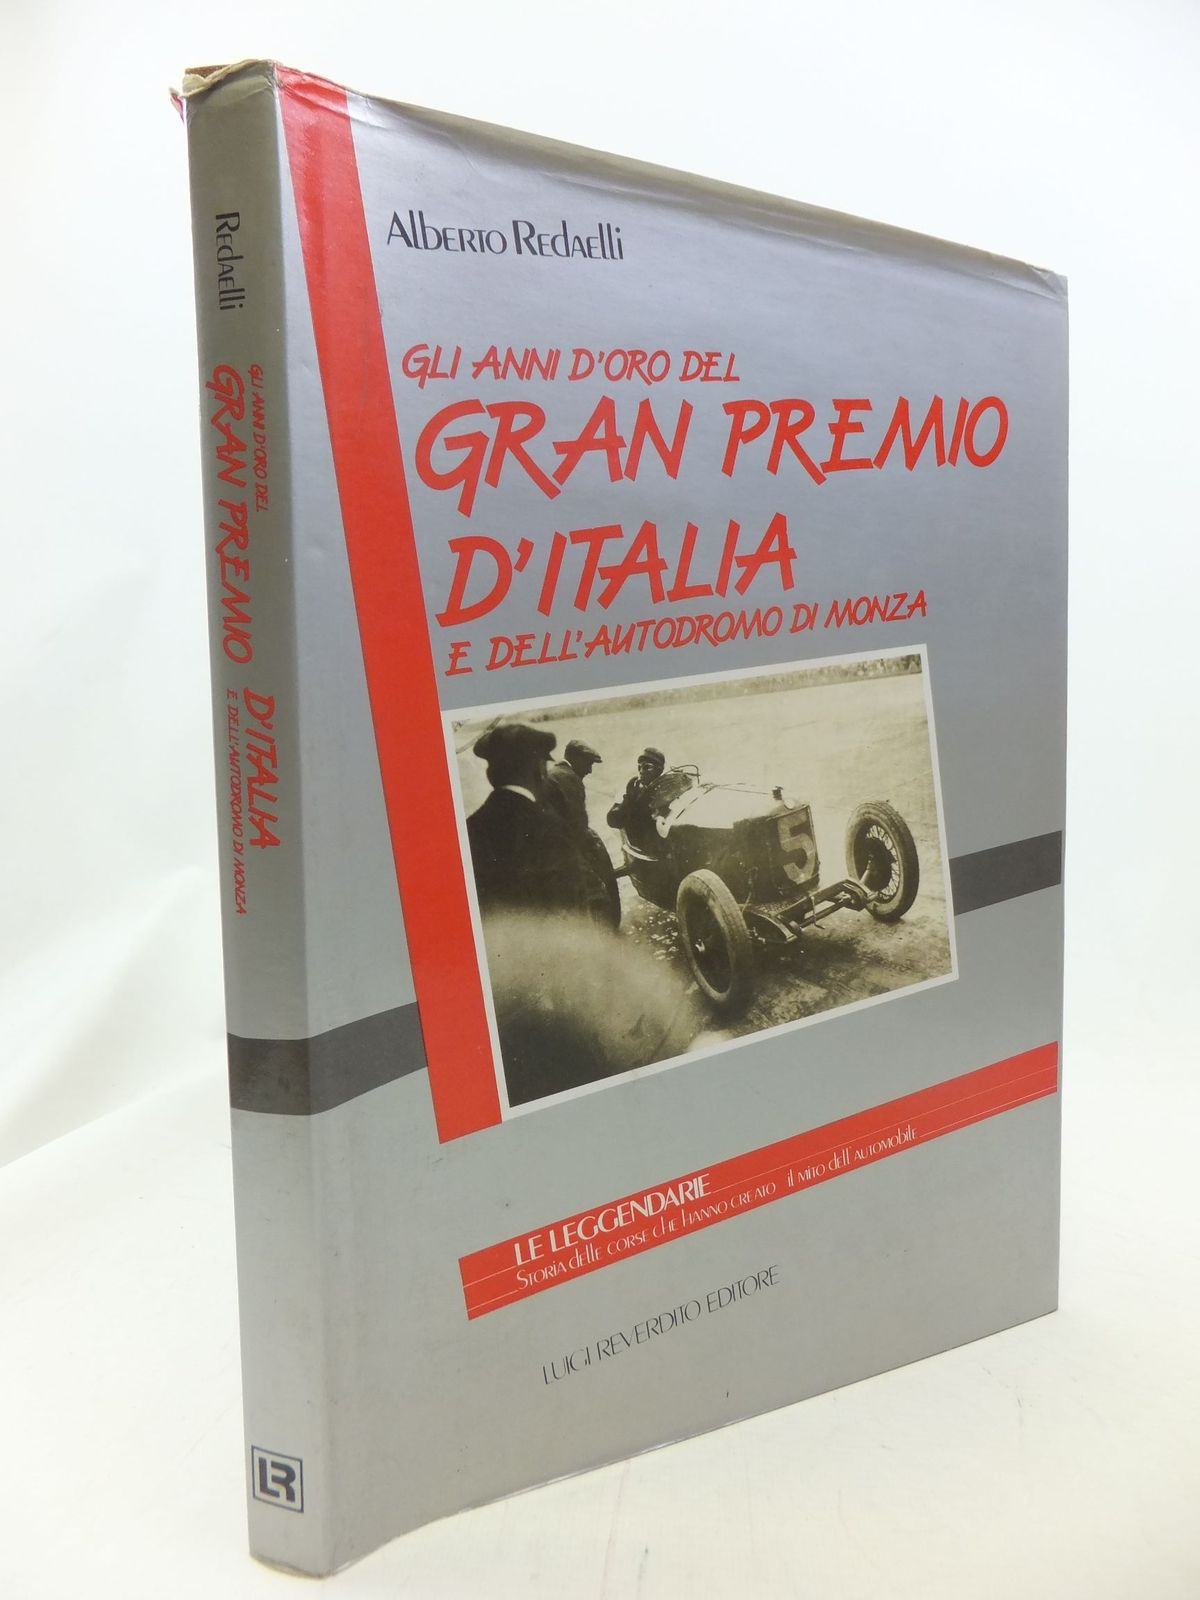 Photo of GLI ANNI D'ORO DEL GRAN PREMIO D'ITALIA E DELL'AUTODROMO DI MONZA written by Redaelli, Alberto published by Lugi Reverdito Editore (STOCK CODE: 1711173)  for sale by Stella & Rose's Books